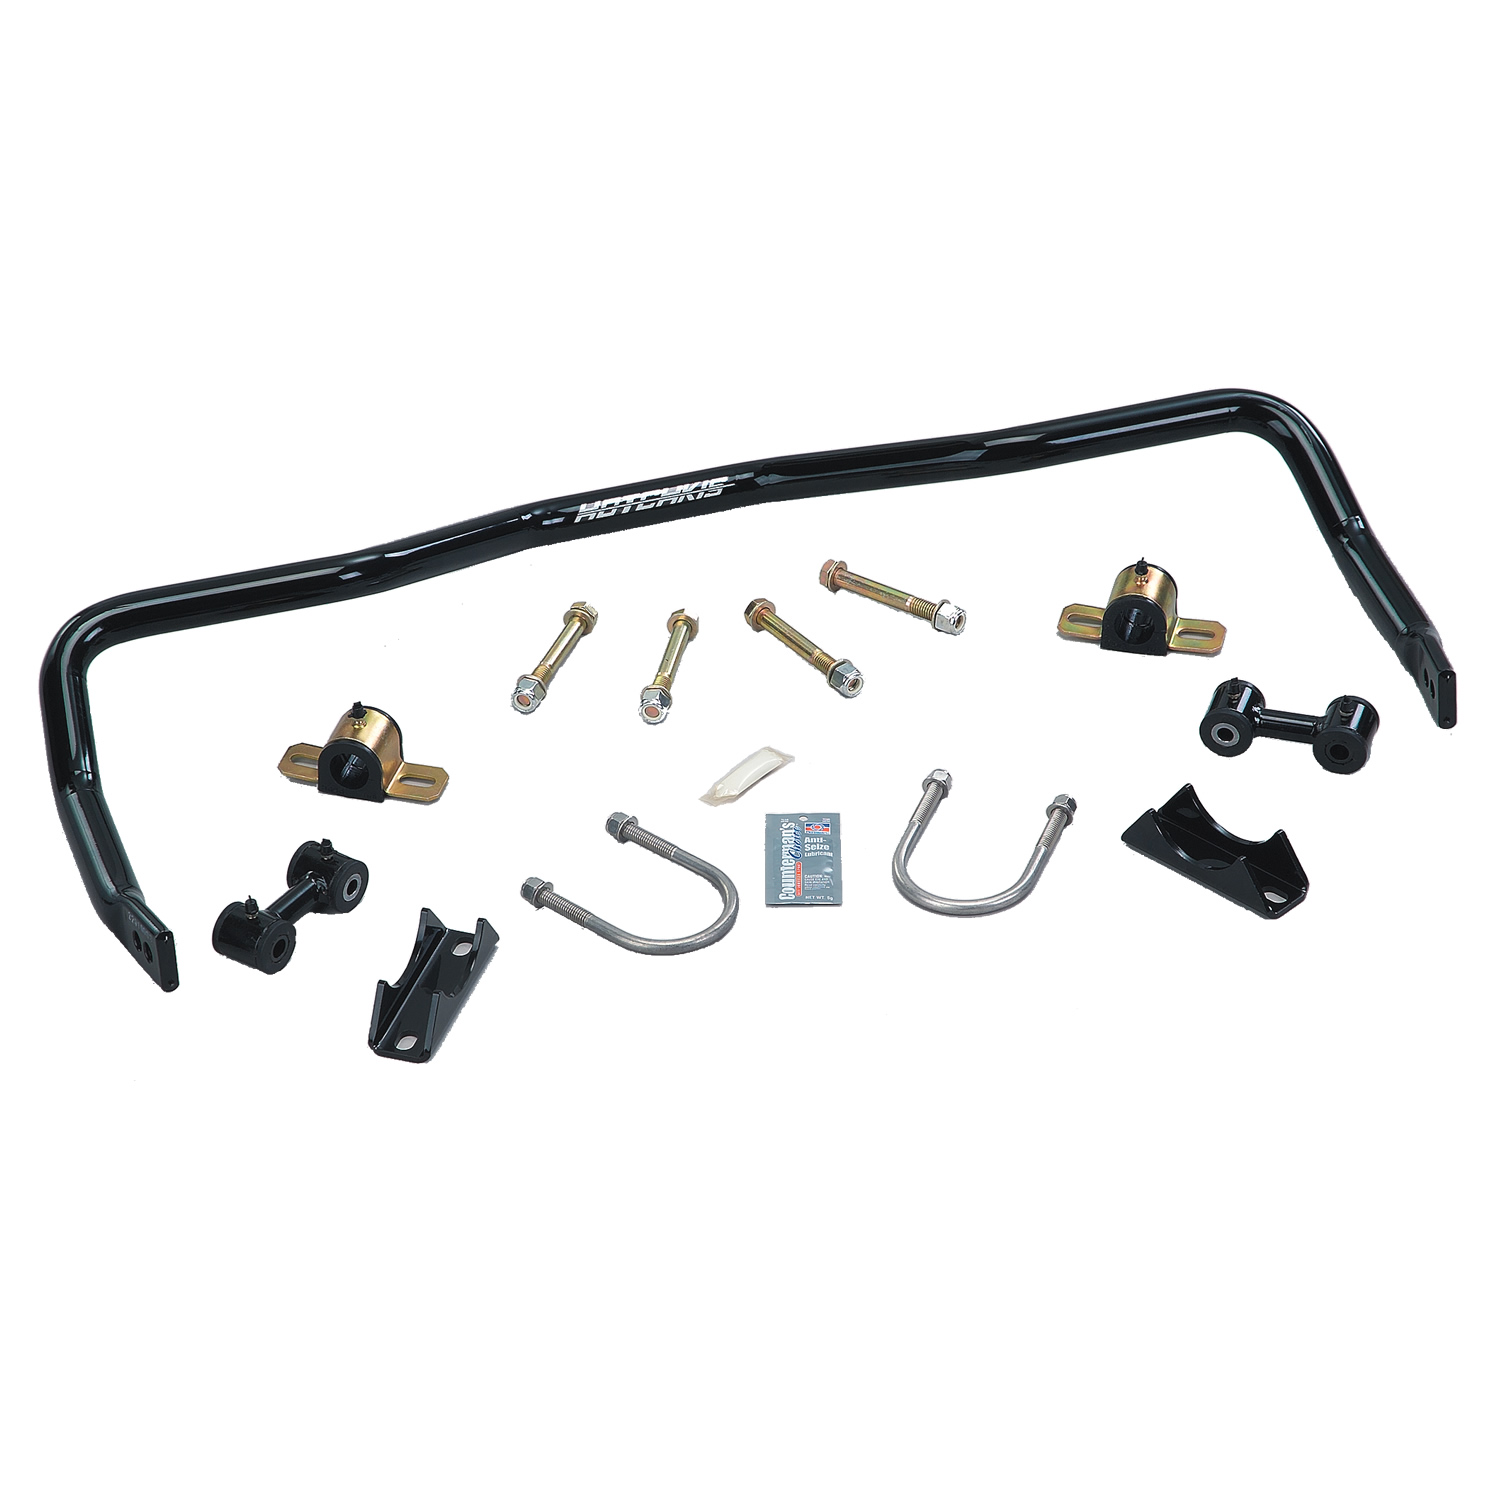 Hotchkis Sport Suspension Systems Parts And Complete Bolt In Packages Blog Archive